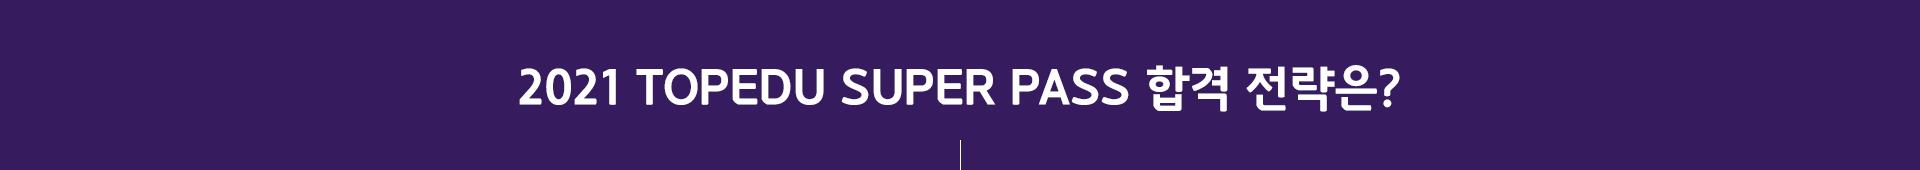 2020 TOPEDU SUPER PASS 합격 전략은?